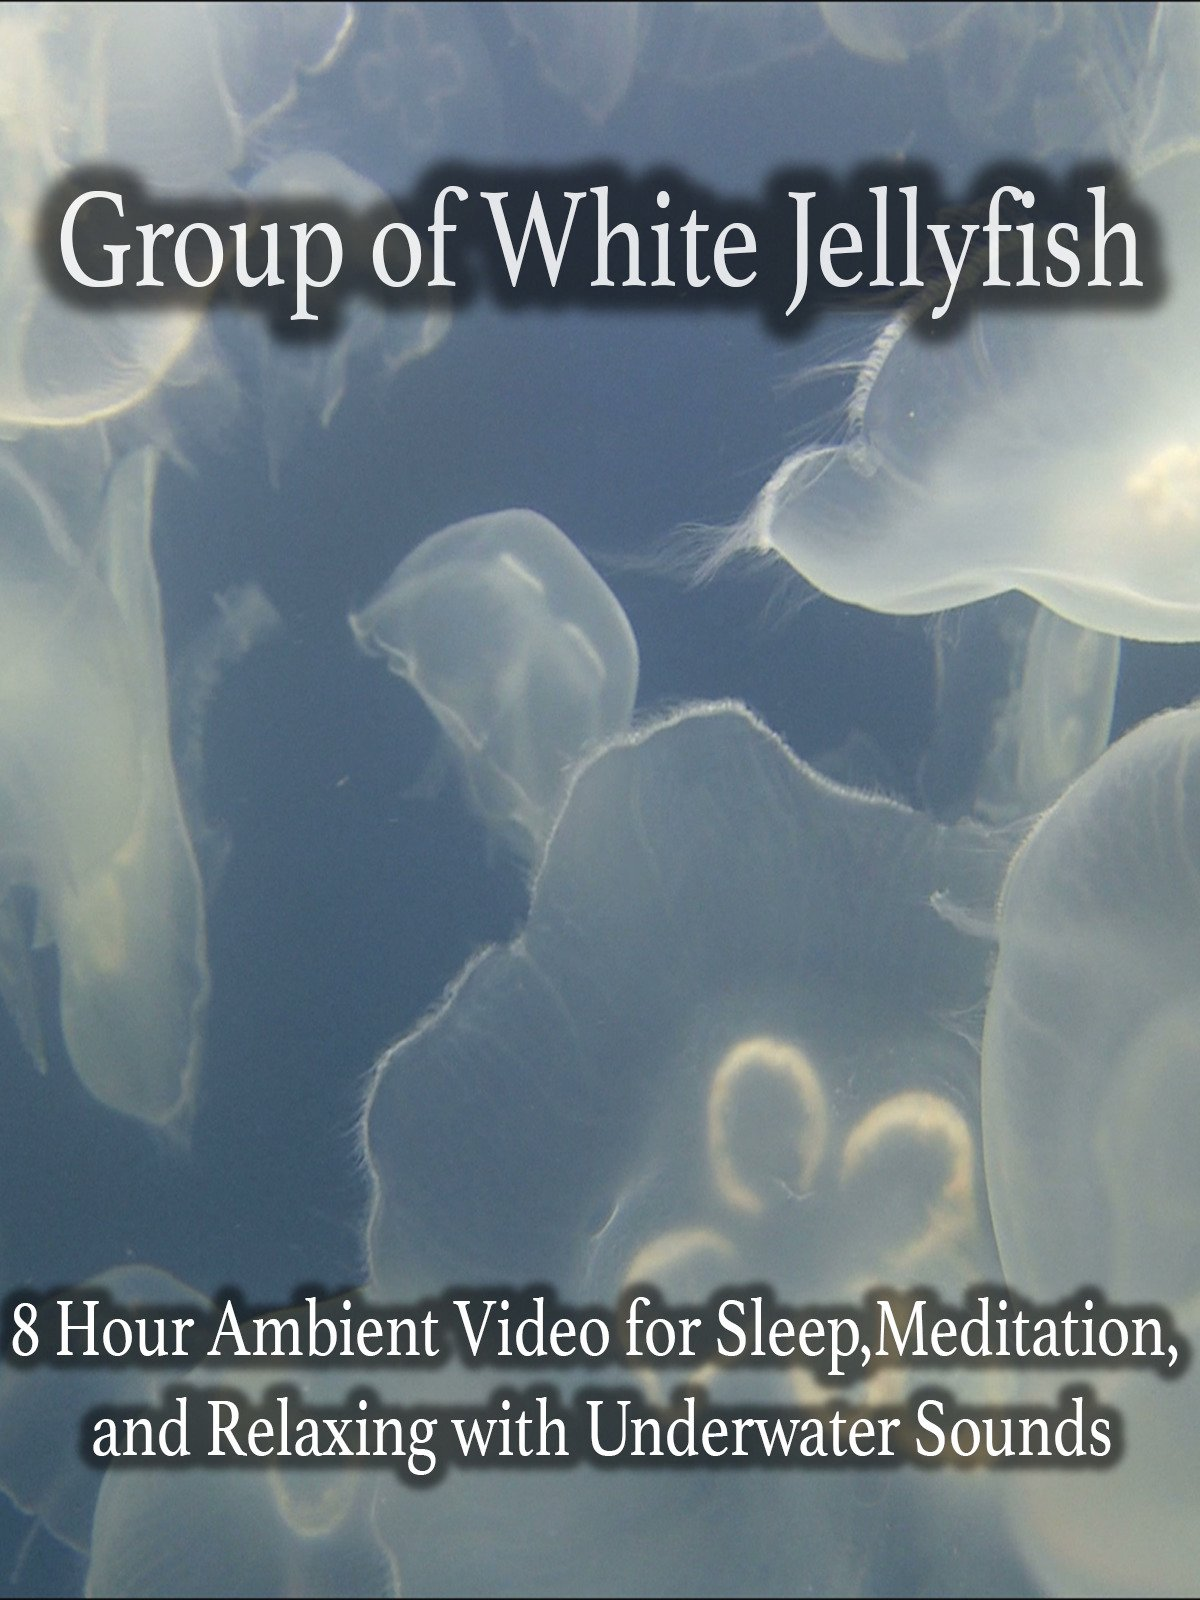 Group of White Jellyfish 8 Hour Ambient Video for Sleep, Meditation, and Relaxing with Underwater Sounds on Amazon Prime Instant Video UK